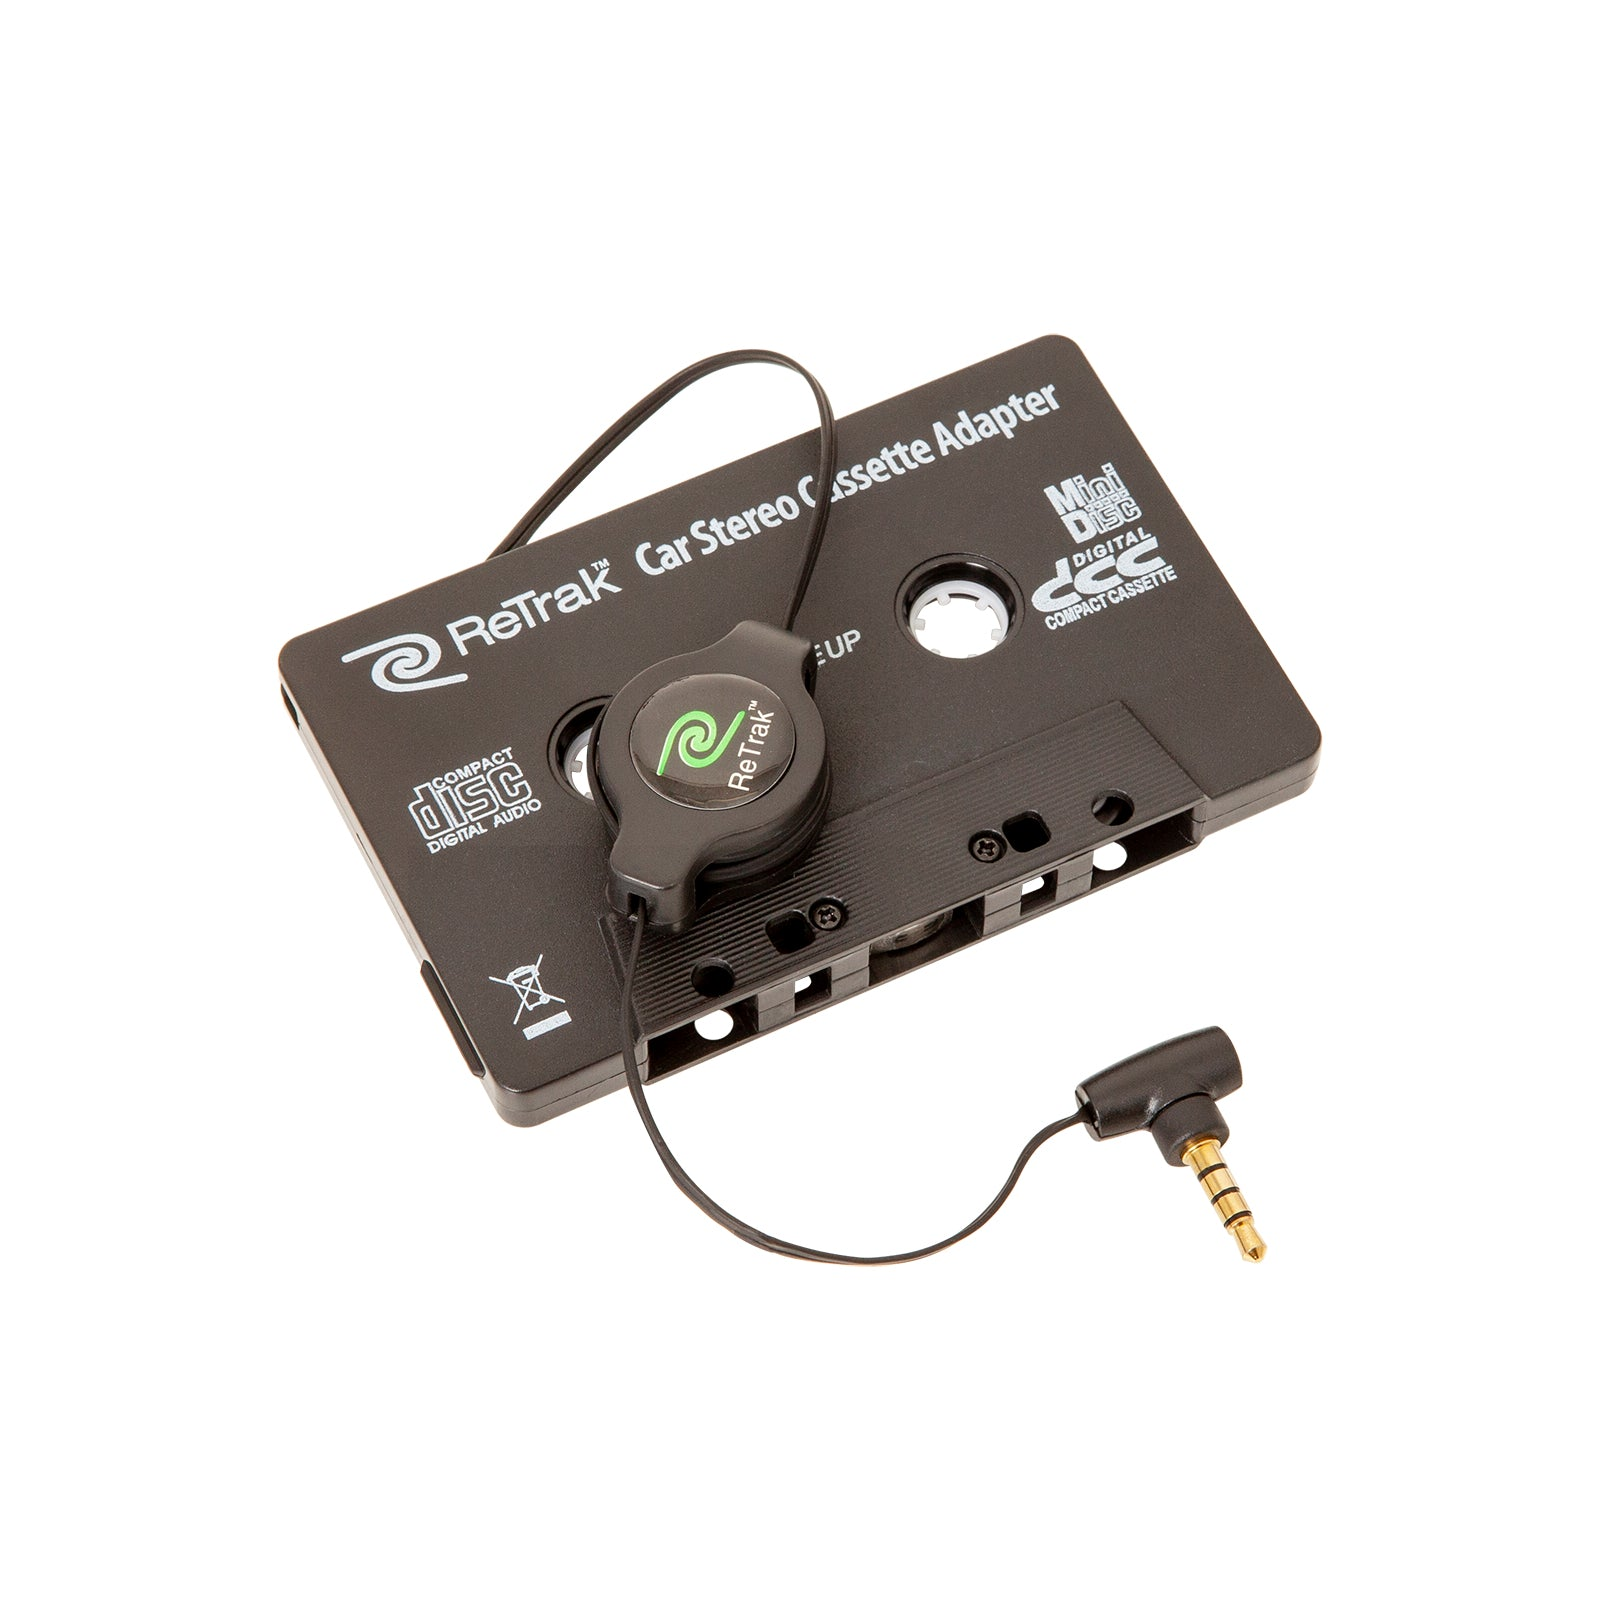 Cassette Adapter and Mic | Retractable Cassette Player Adapter | Black